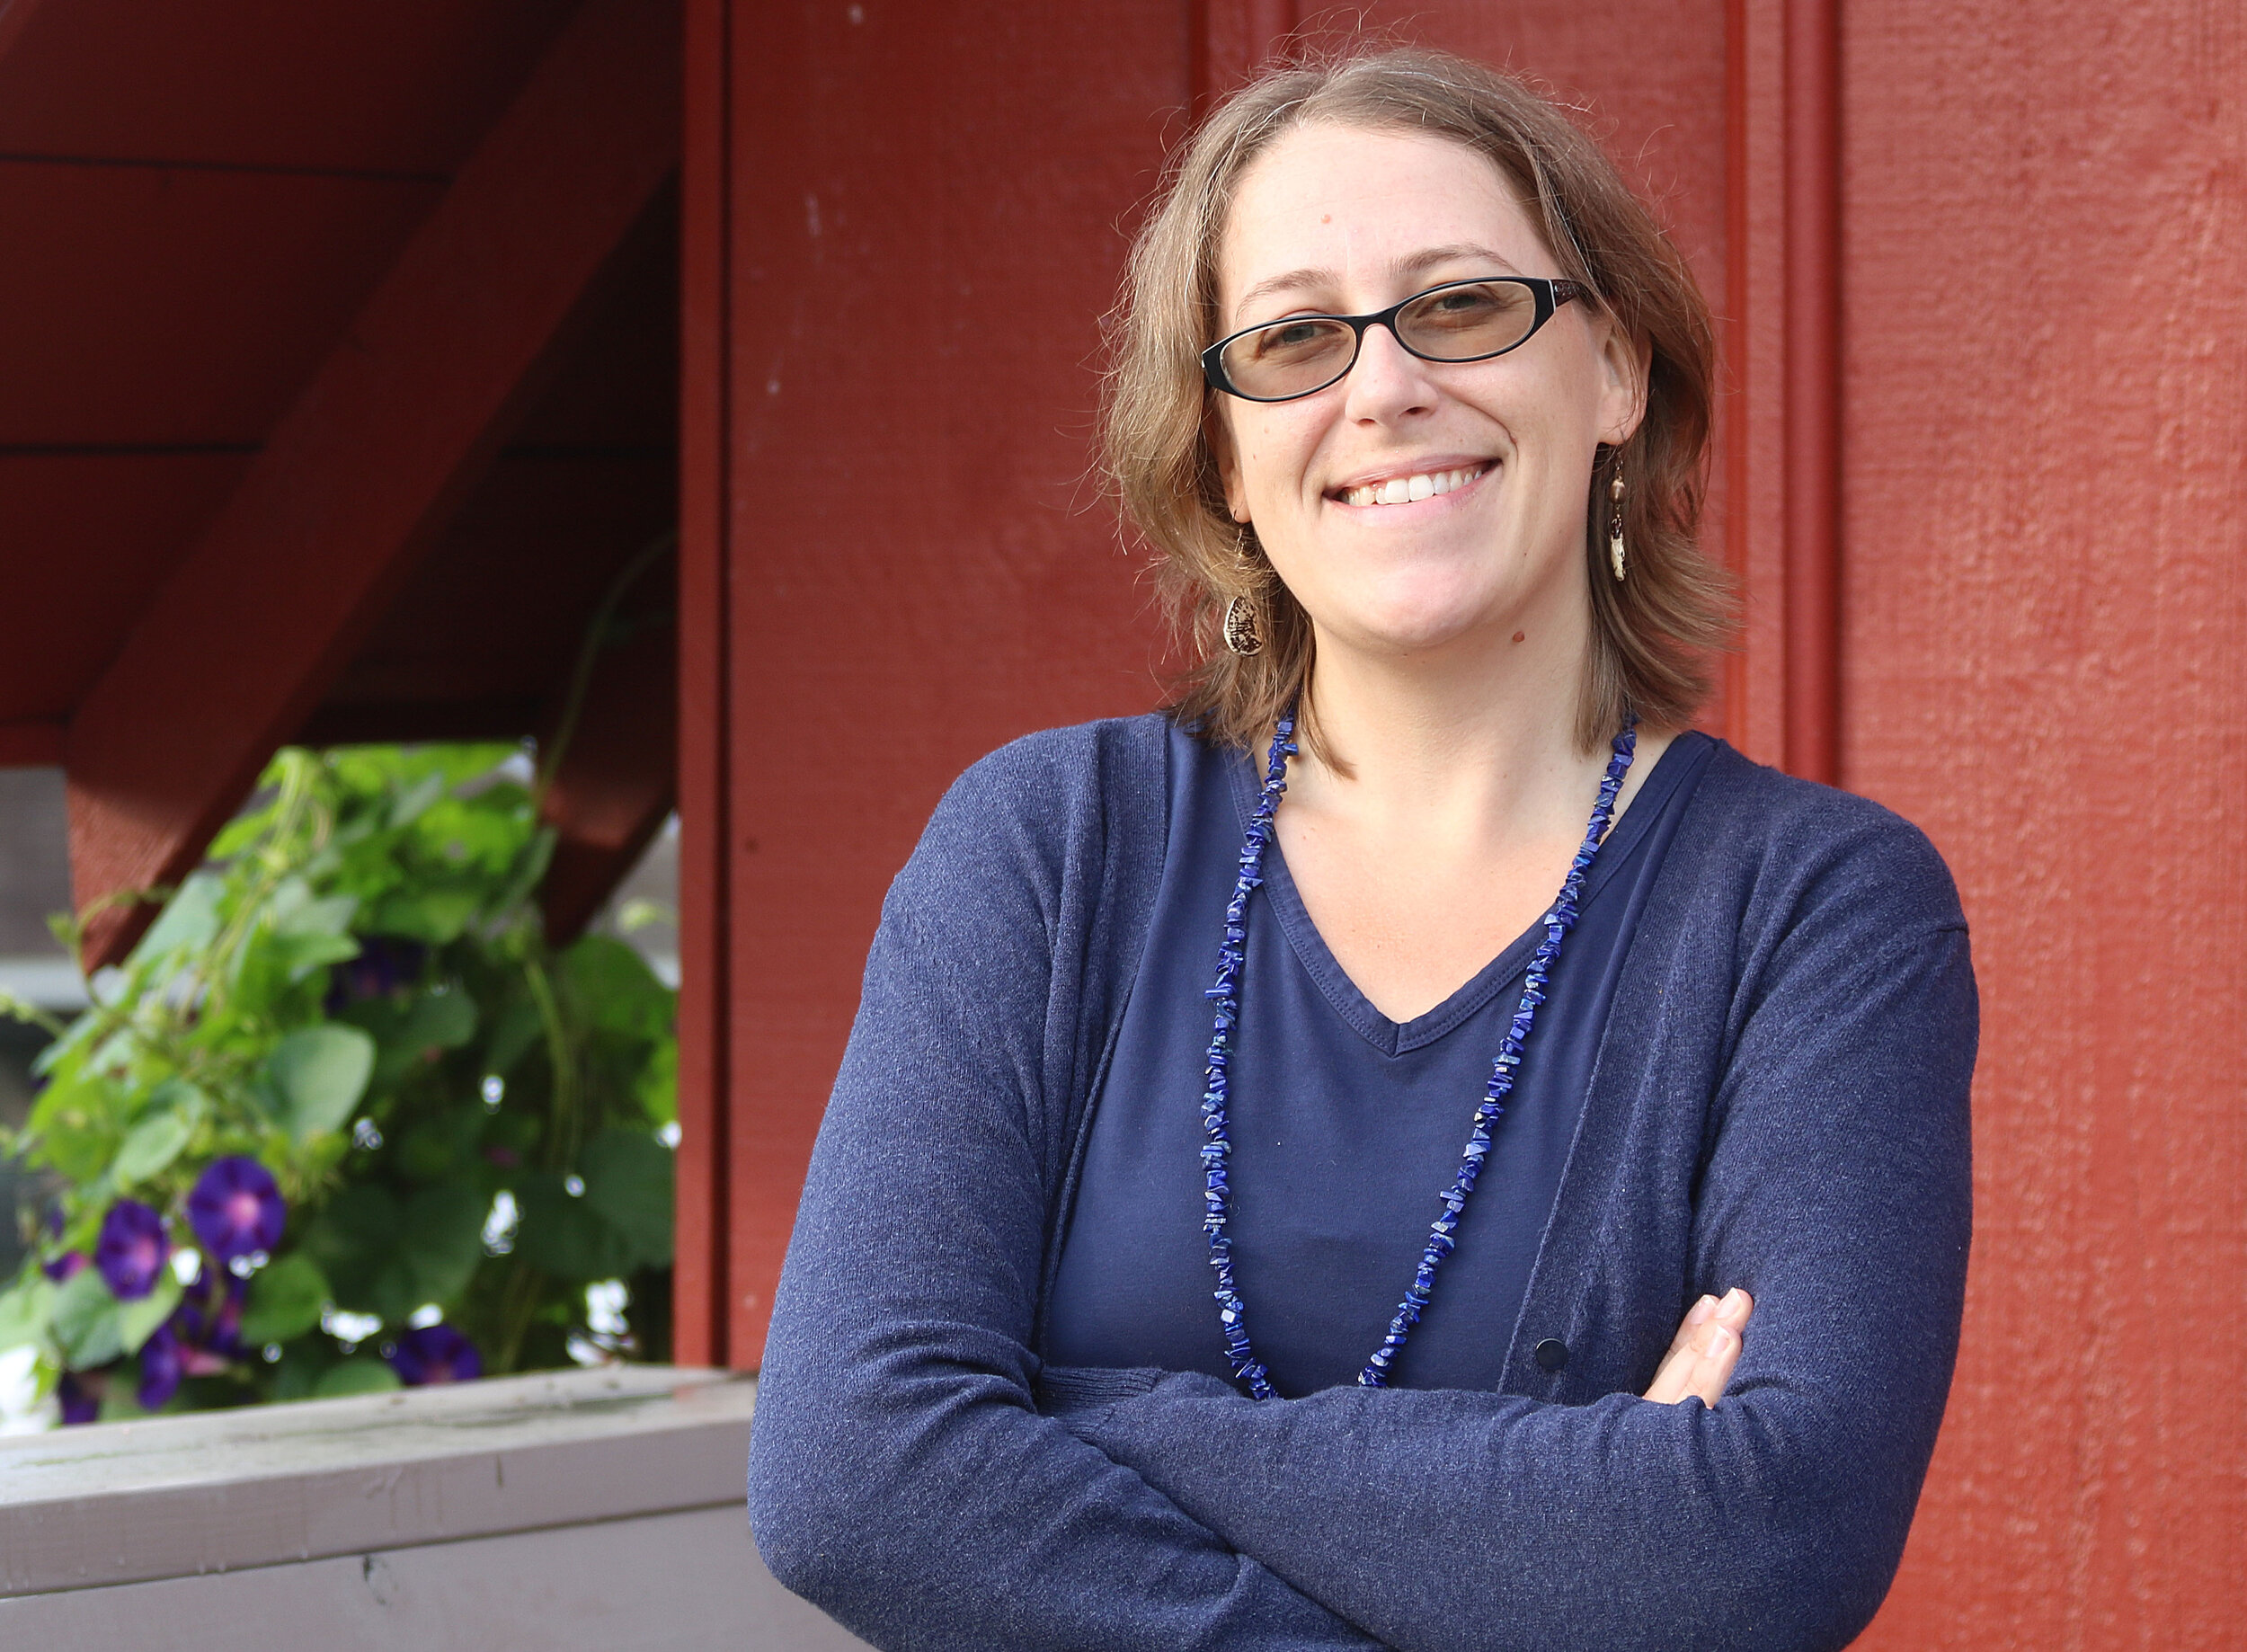 Emily Rose Haga assumed responsibilities as executive director of Seed Savers Exchange on September 16.